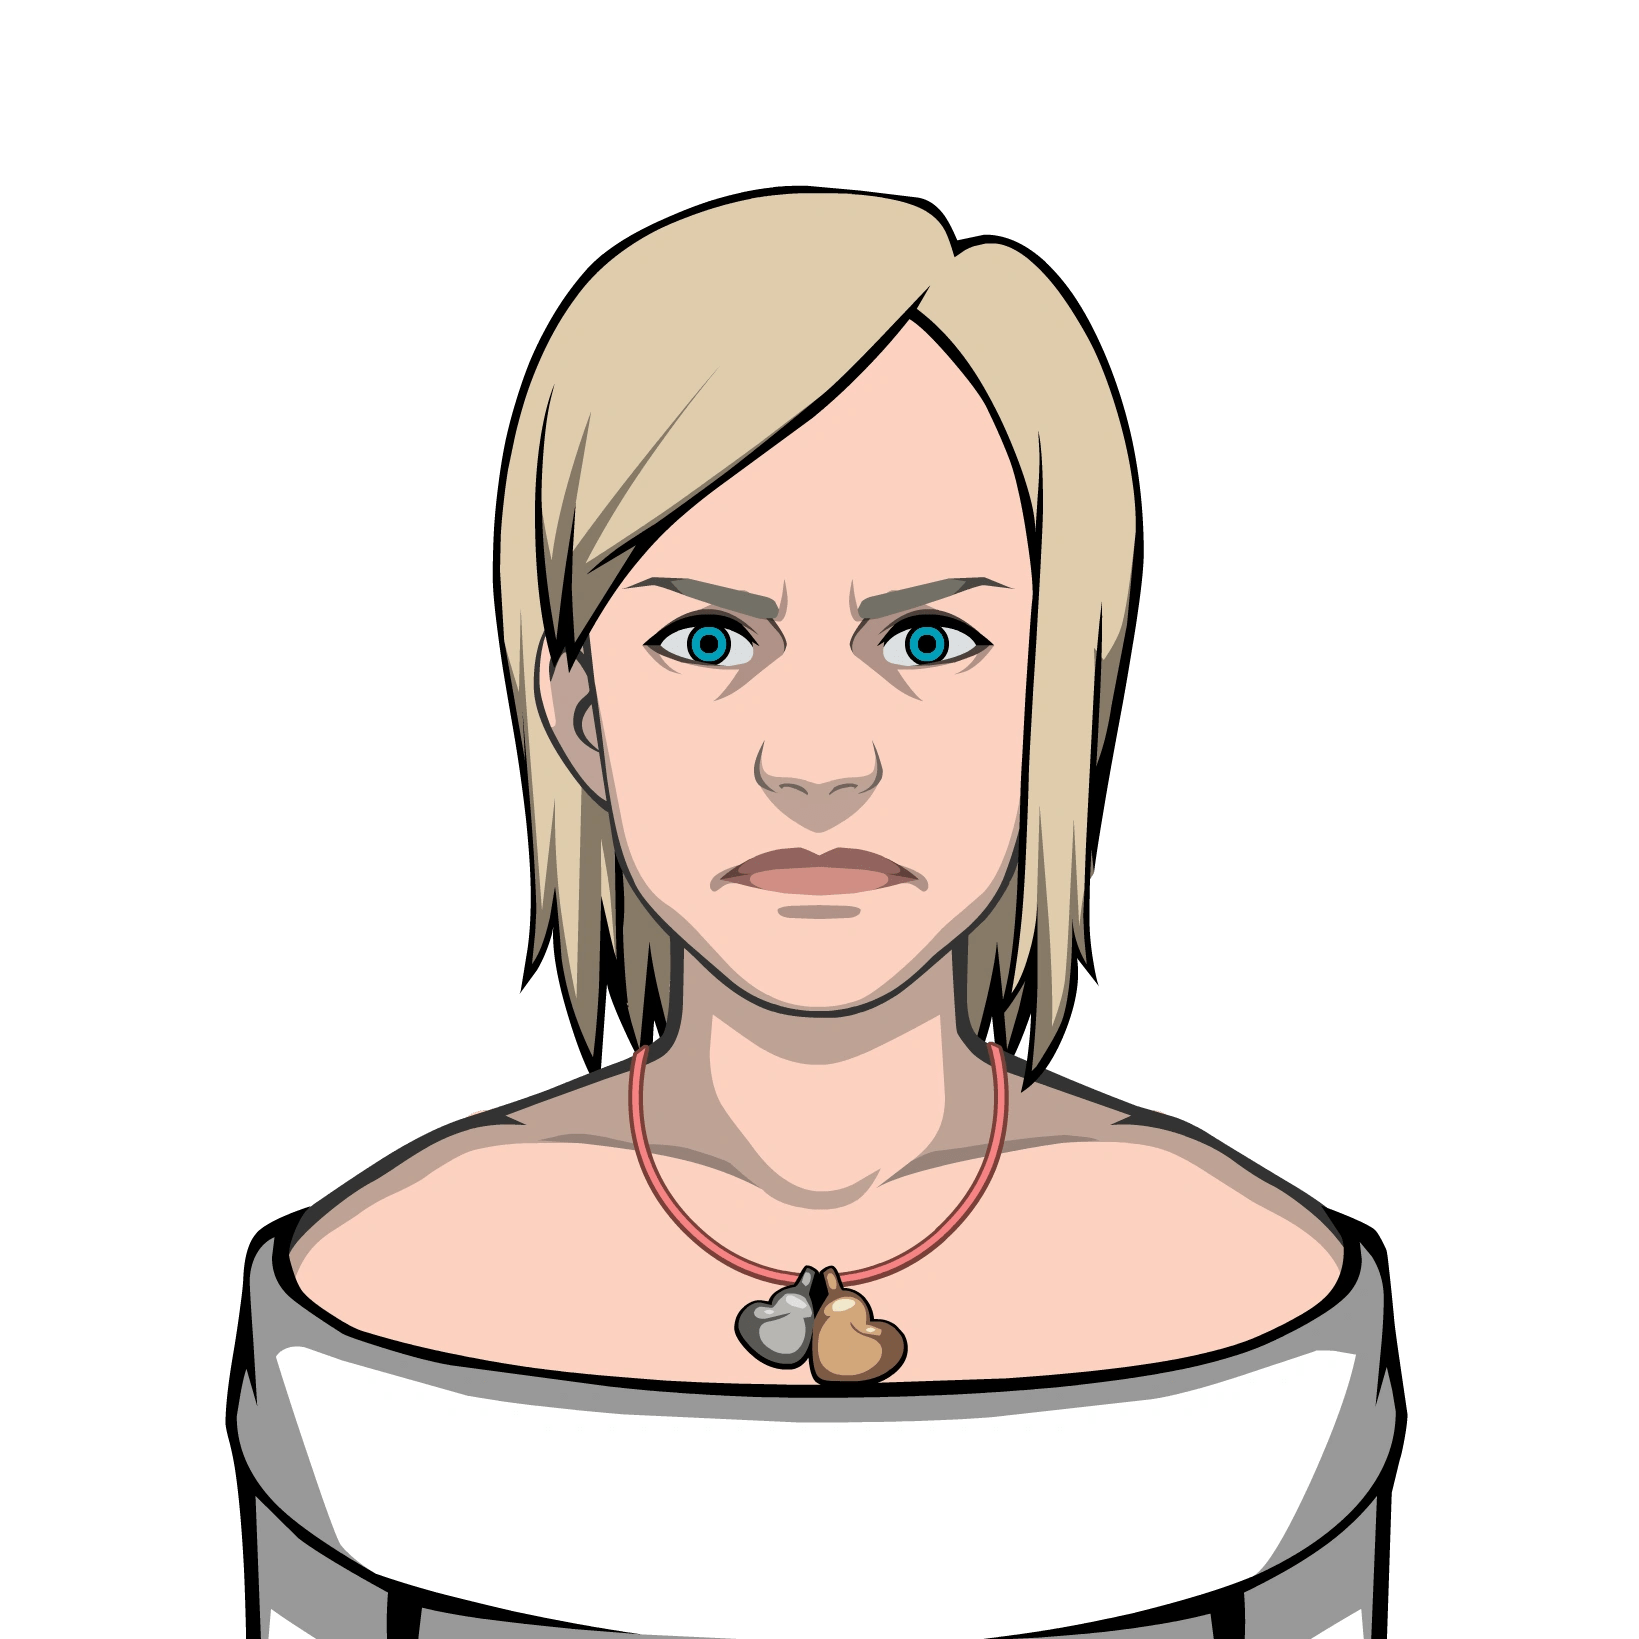 Image - Alice august 45.png   Criminal Case Wiki   Fandom powered by Wikia